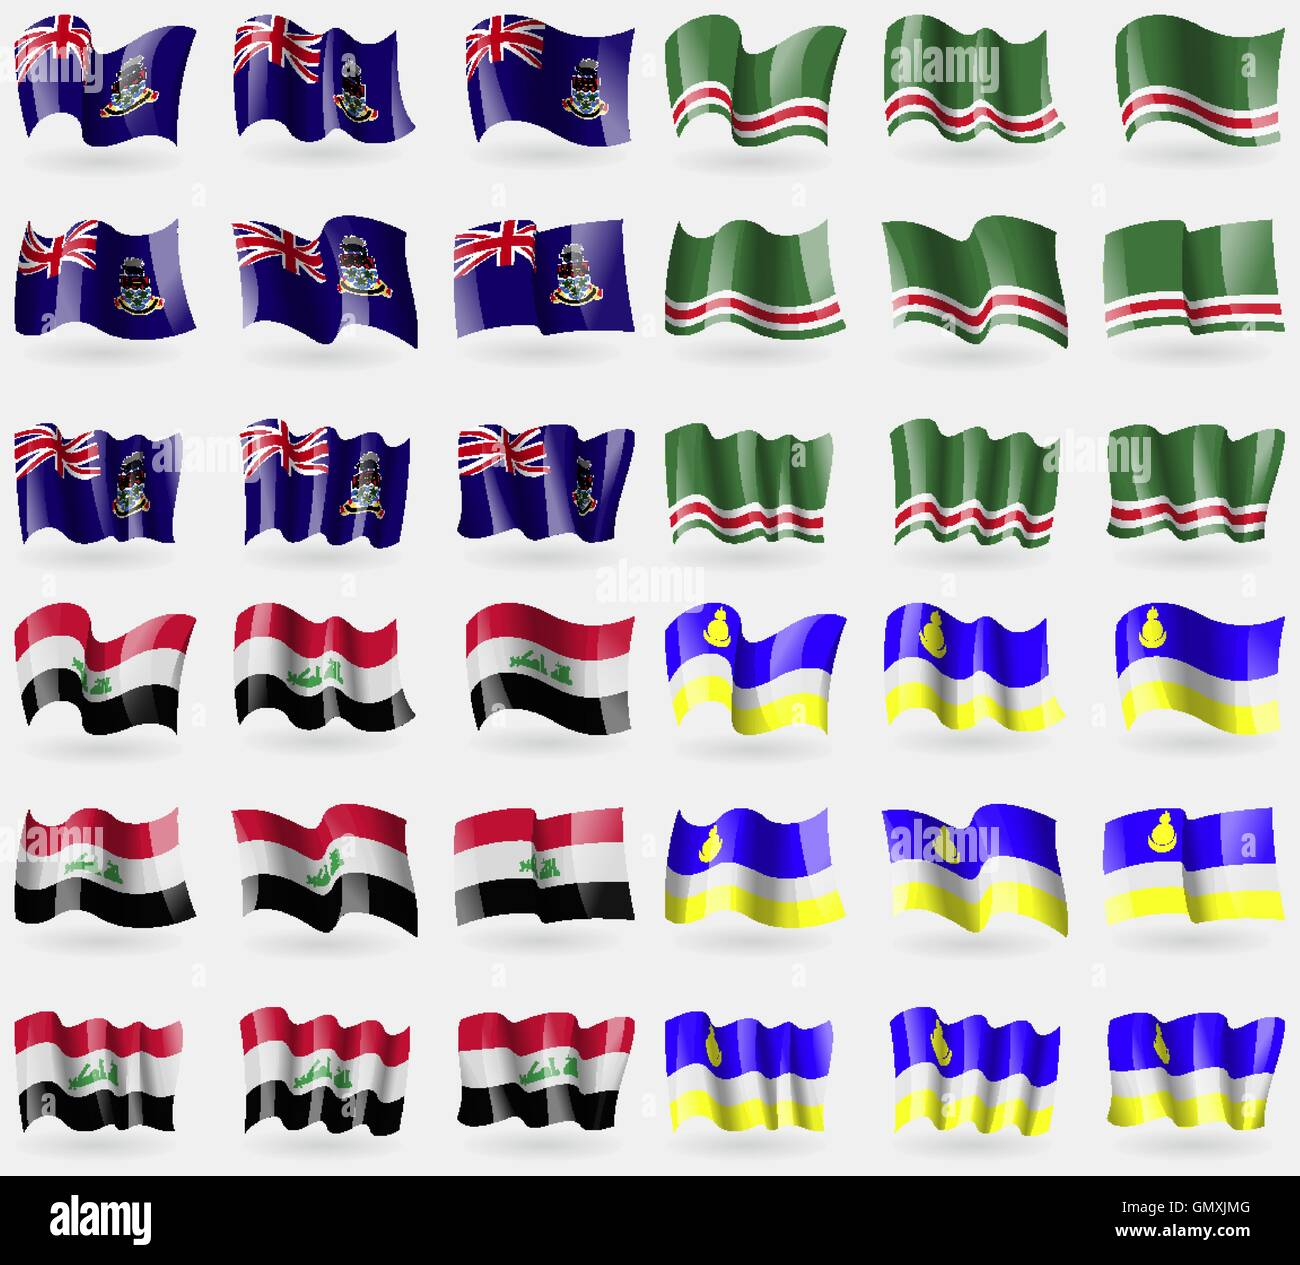 Cayman Islands, Chechen Republic of Ichkeria, Iraq, Buryatia. Set of 36 flags of the countries of the world. Vector - Stock Image